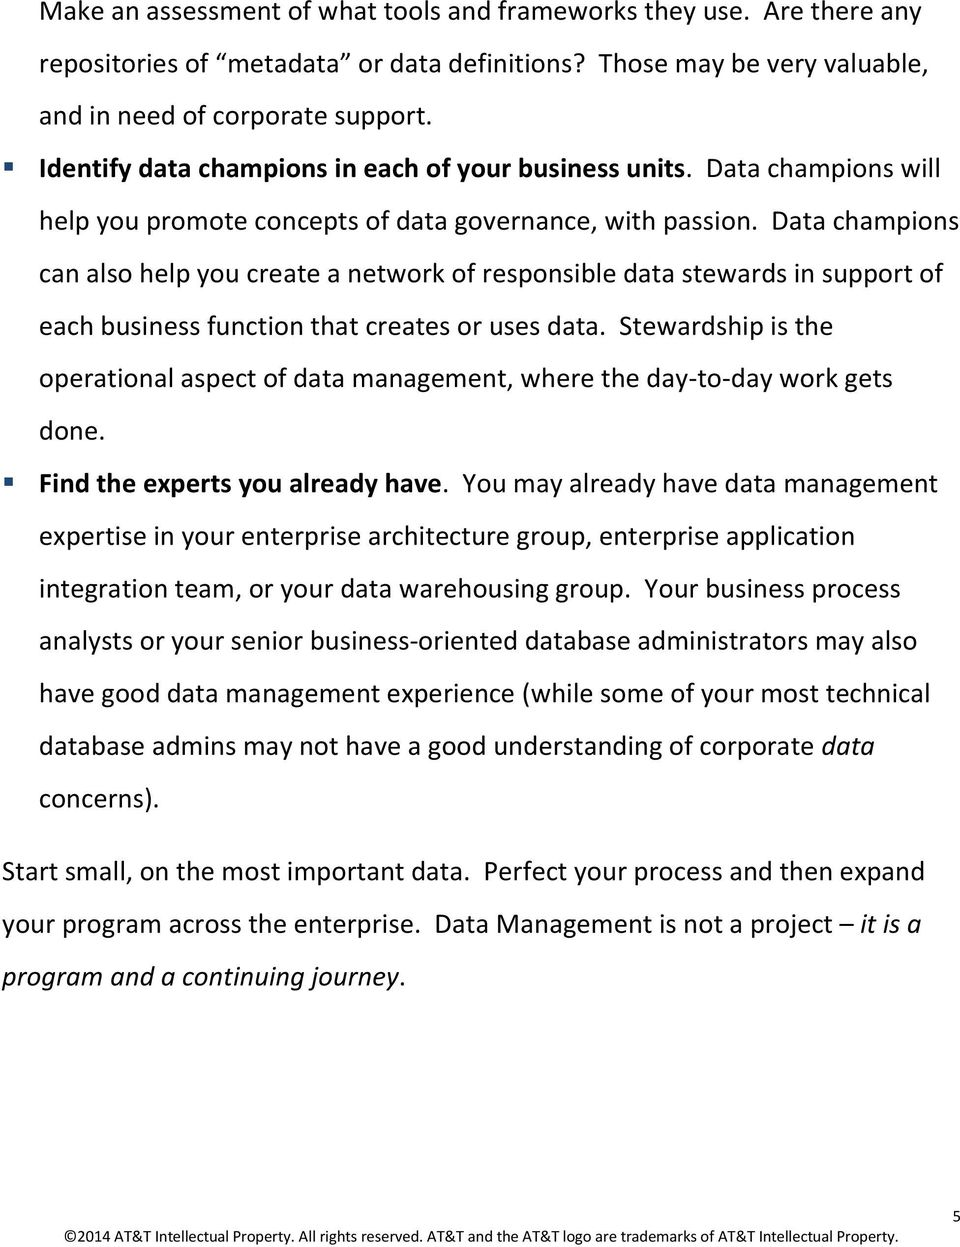 Data champions can also help you create a network of responsible data stewards in support of each business function that creates or uses data.